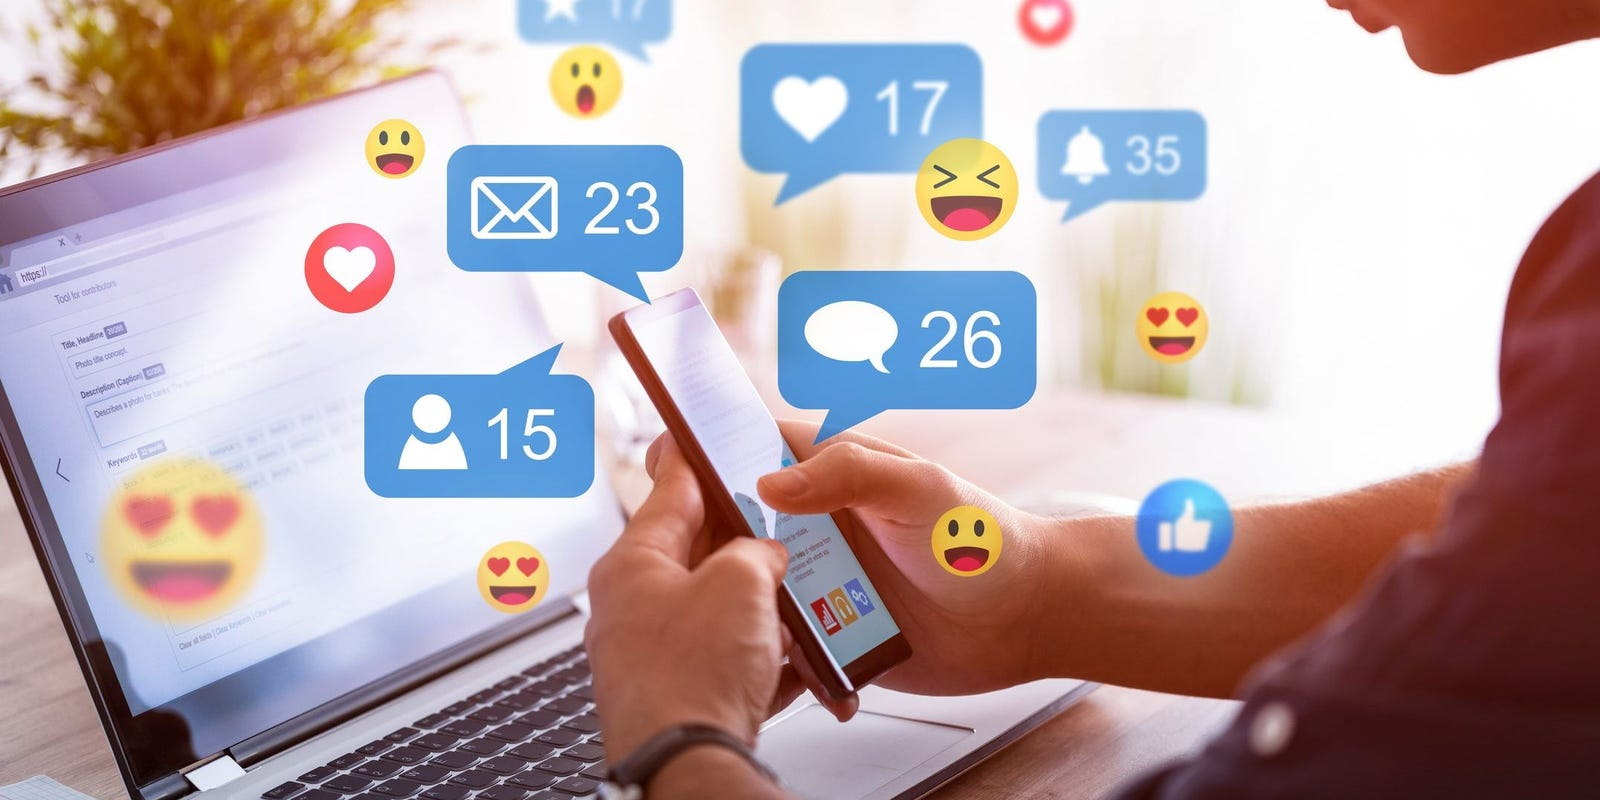 Can your personal comments on social media get you fired? Ask HR